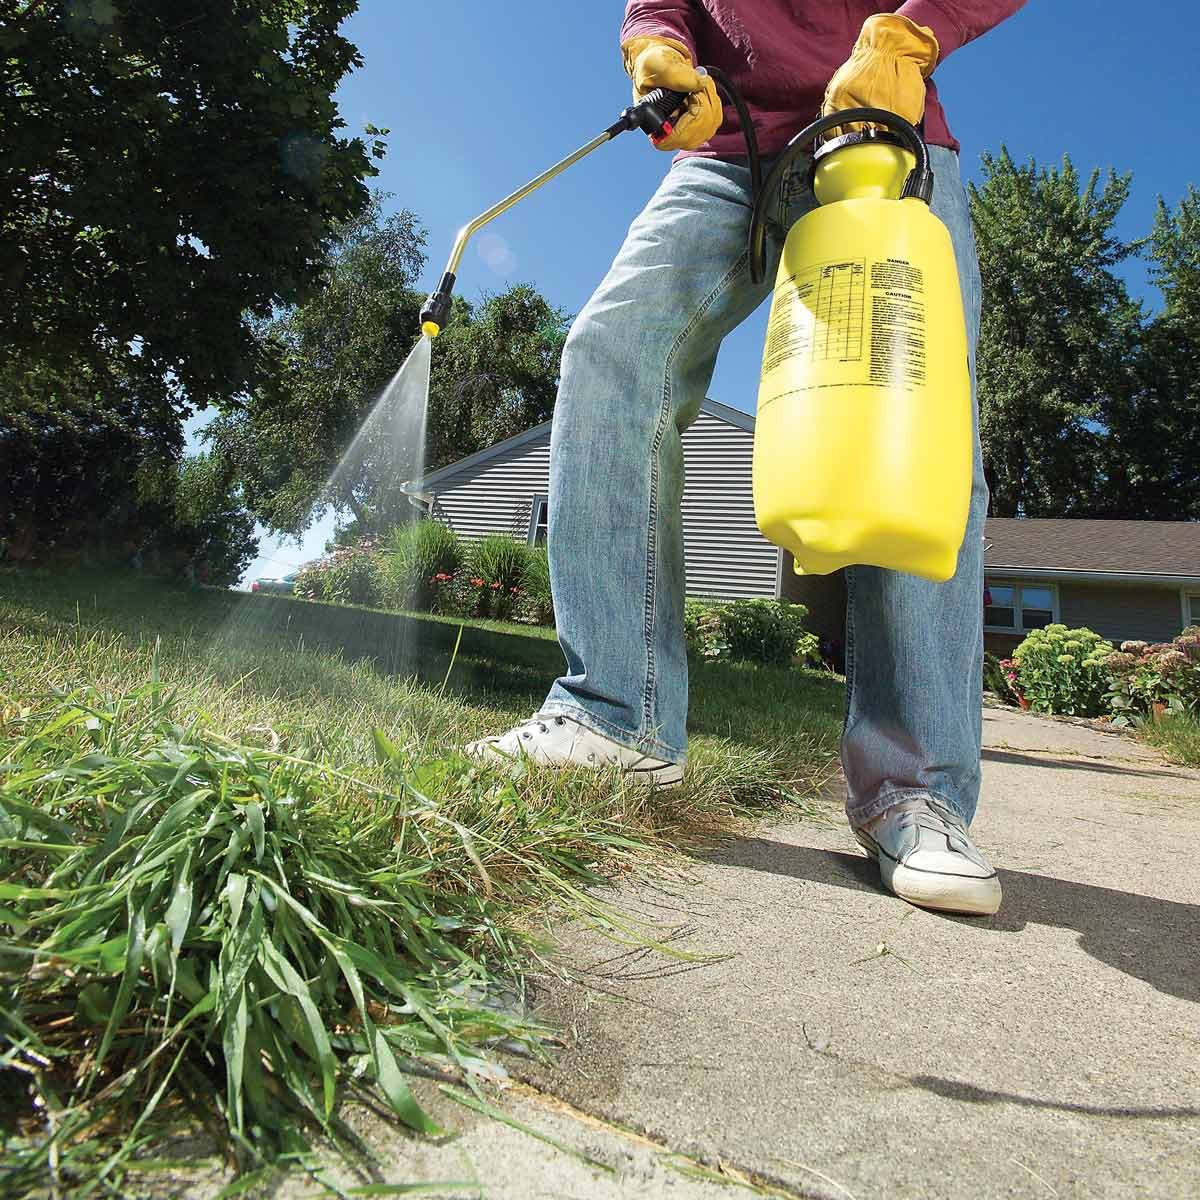 Applying herbicide to weed-infested lawn